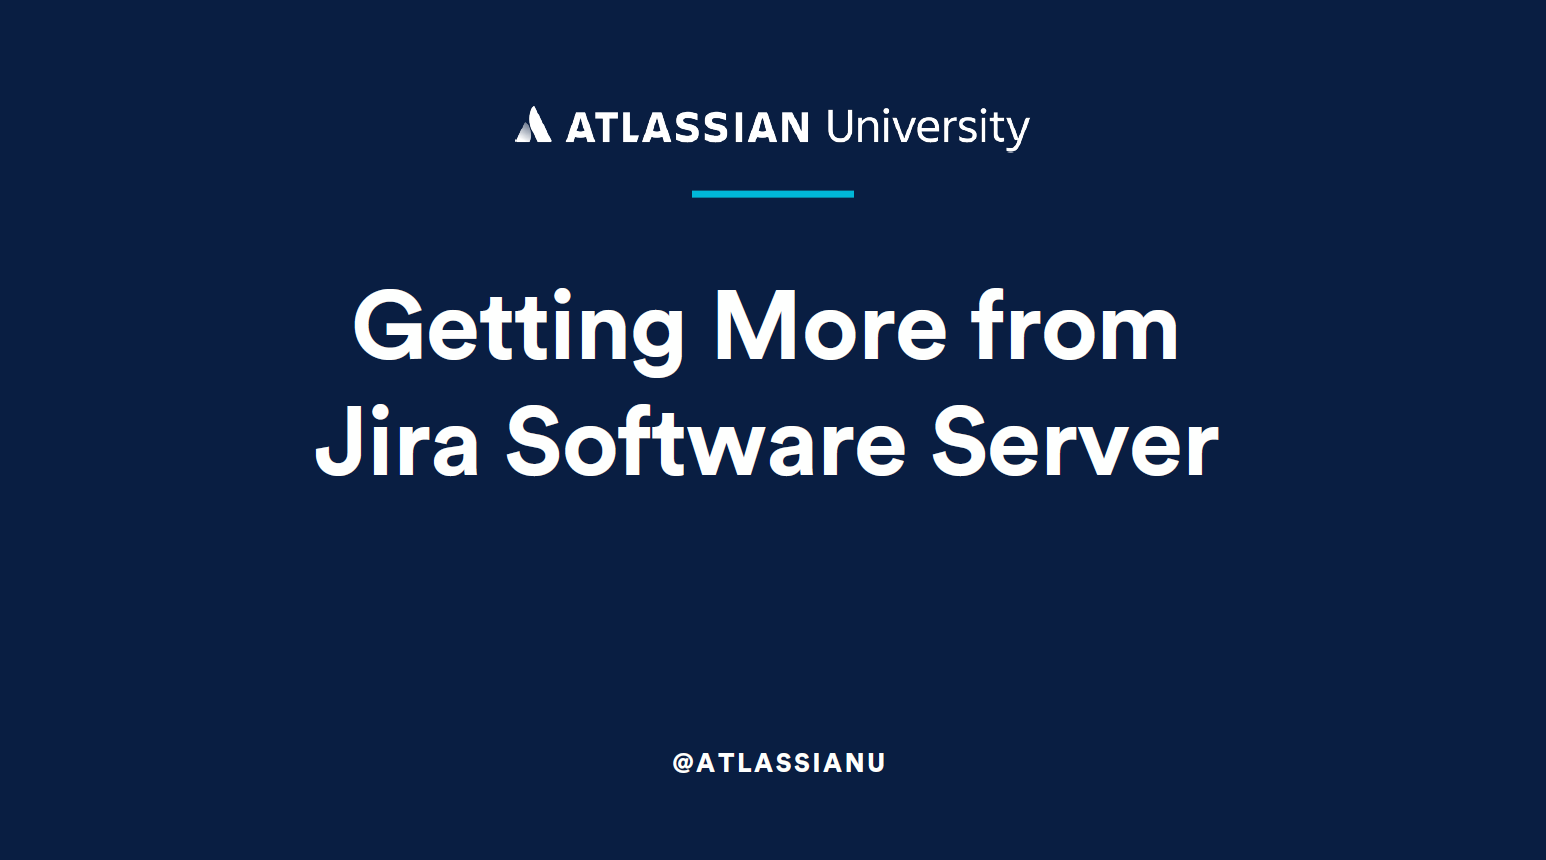 Getting More from Jira Software Server (1)